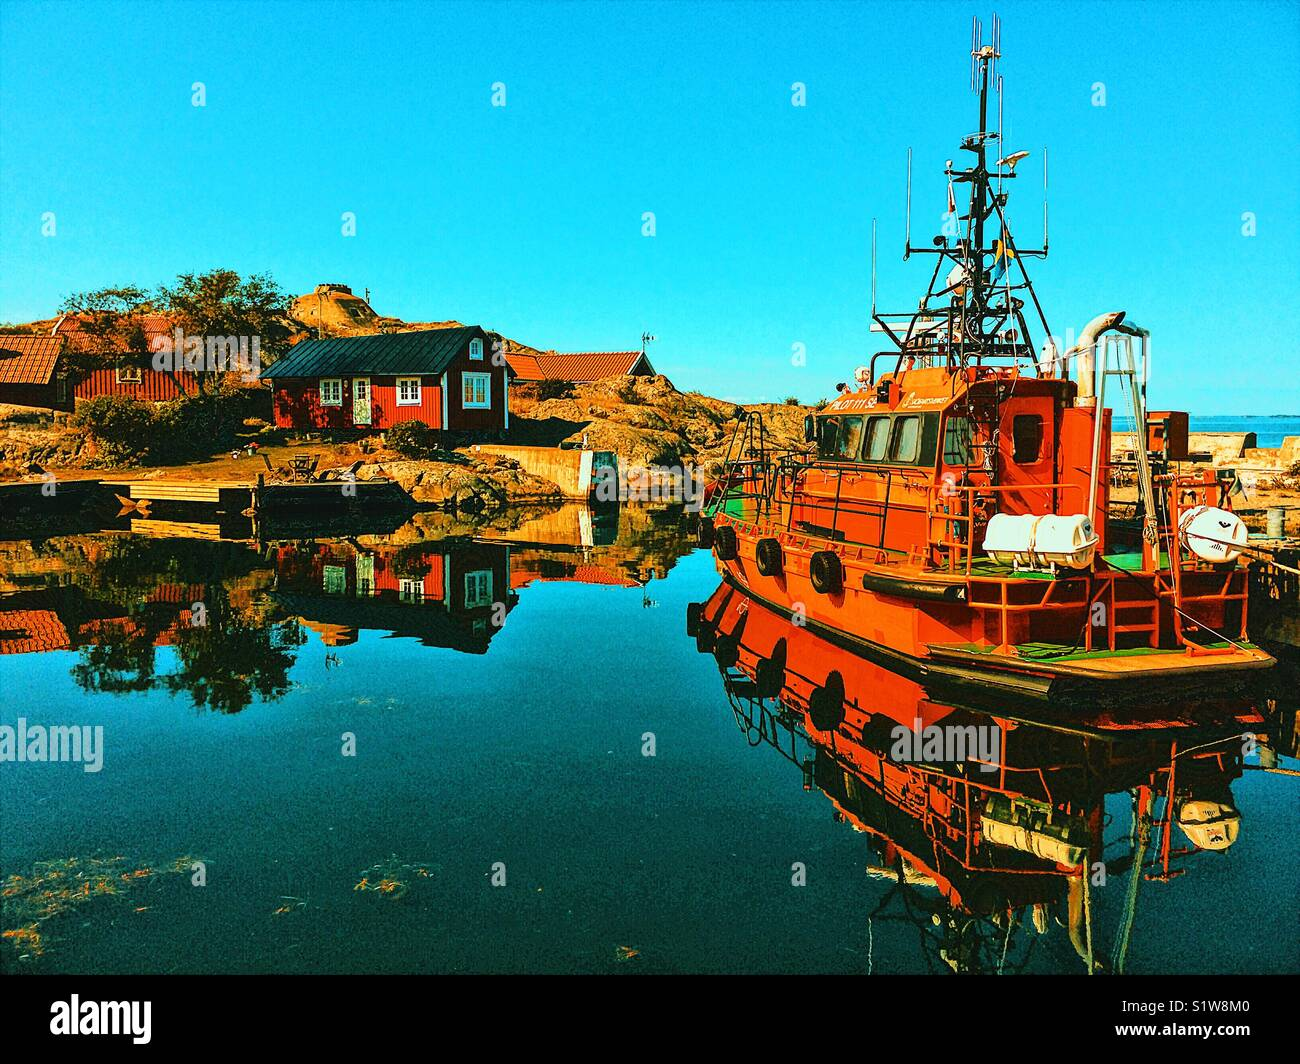 Pilot boat in Vasterhamn (west harbour) on the island of Oja at the southern end of the Stockholm archipelago, Sweden, Stock Photo